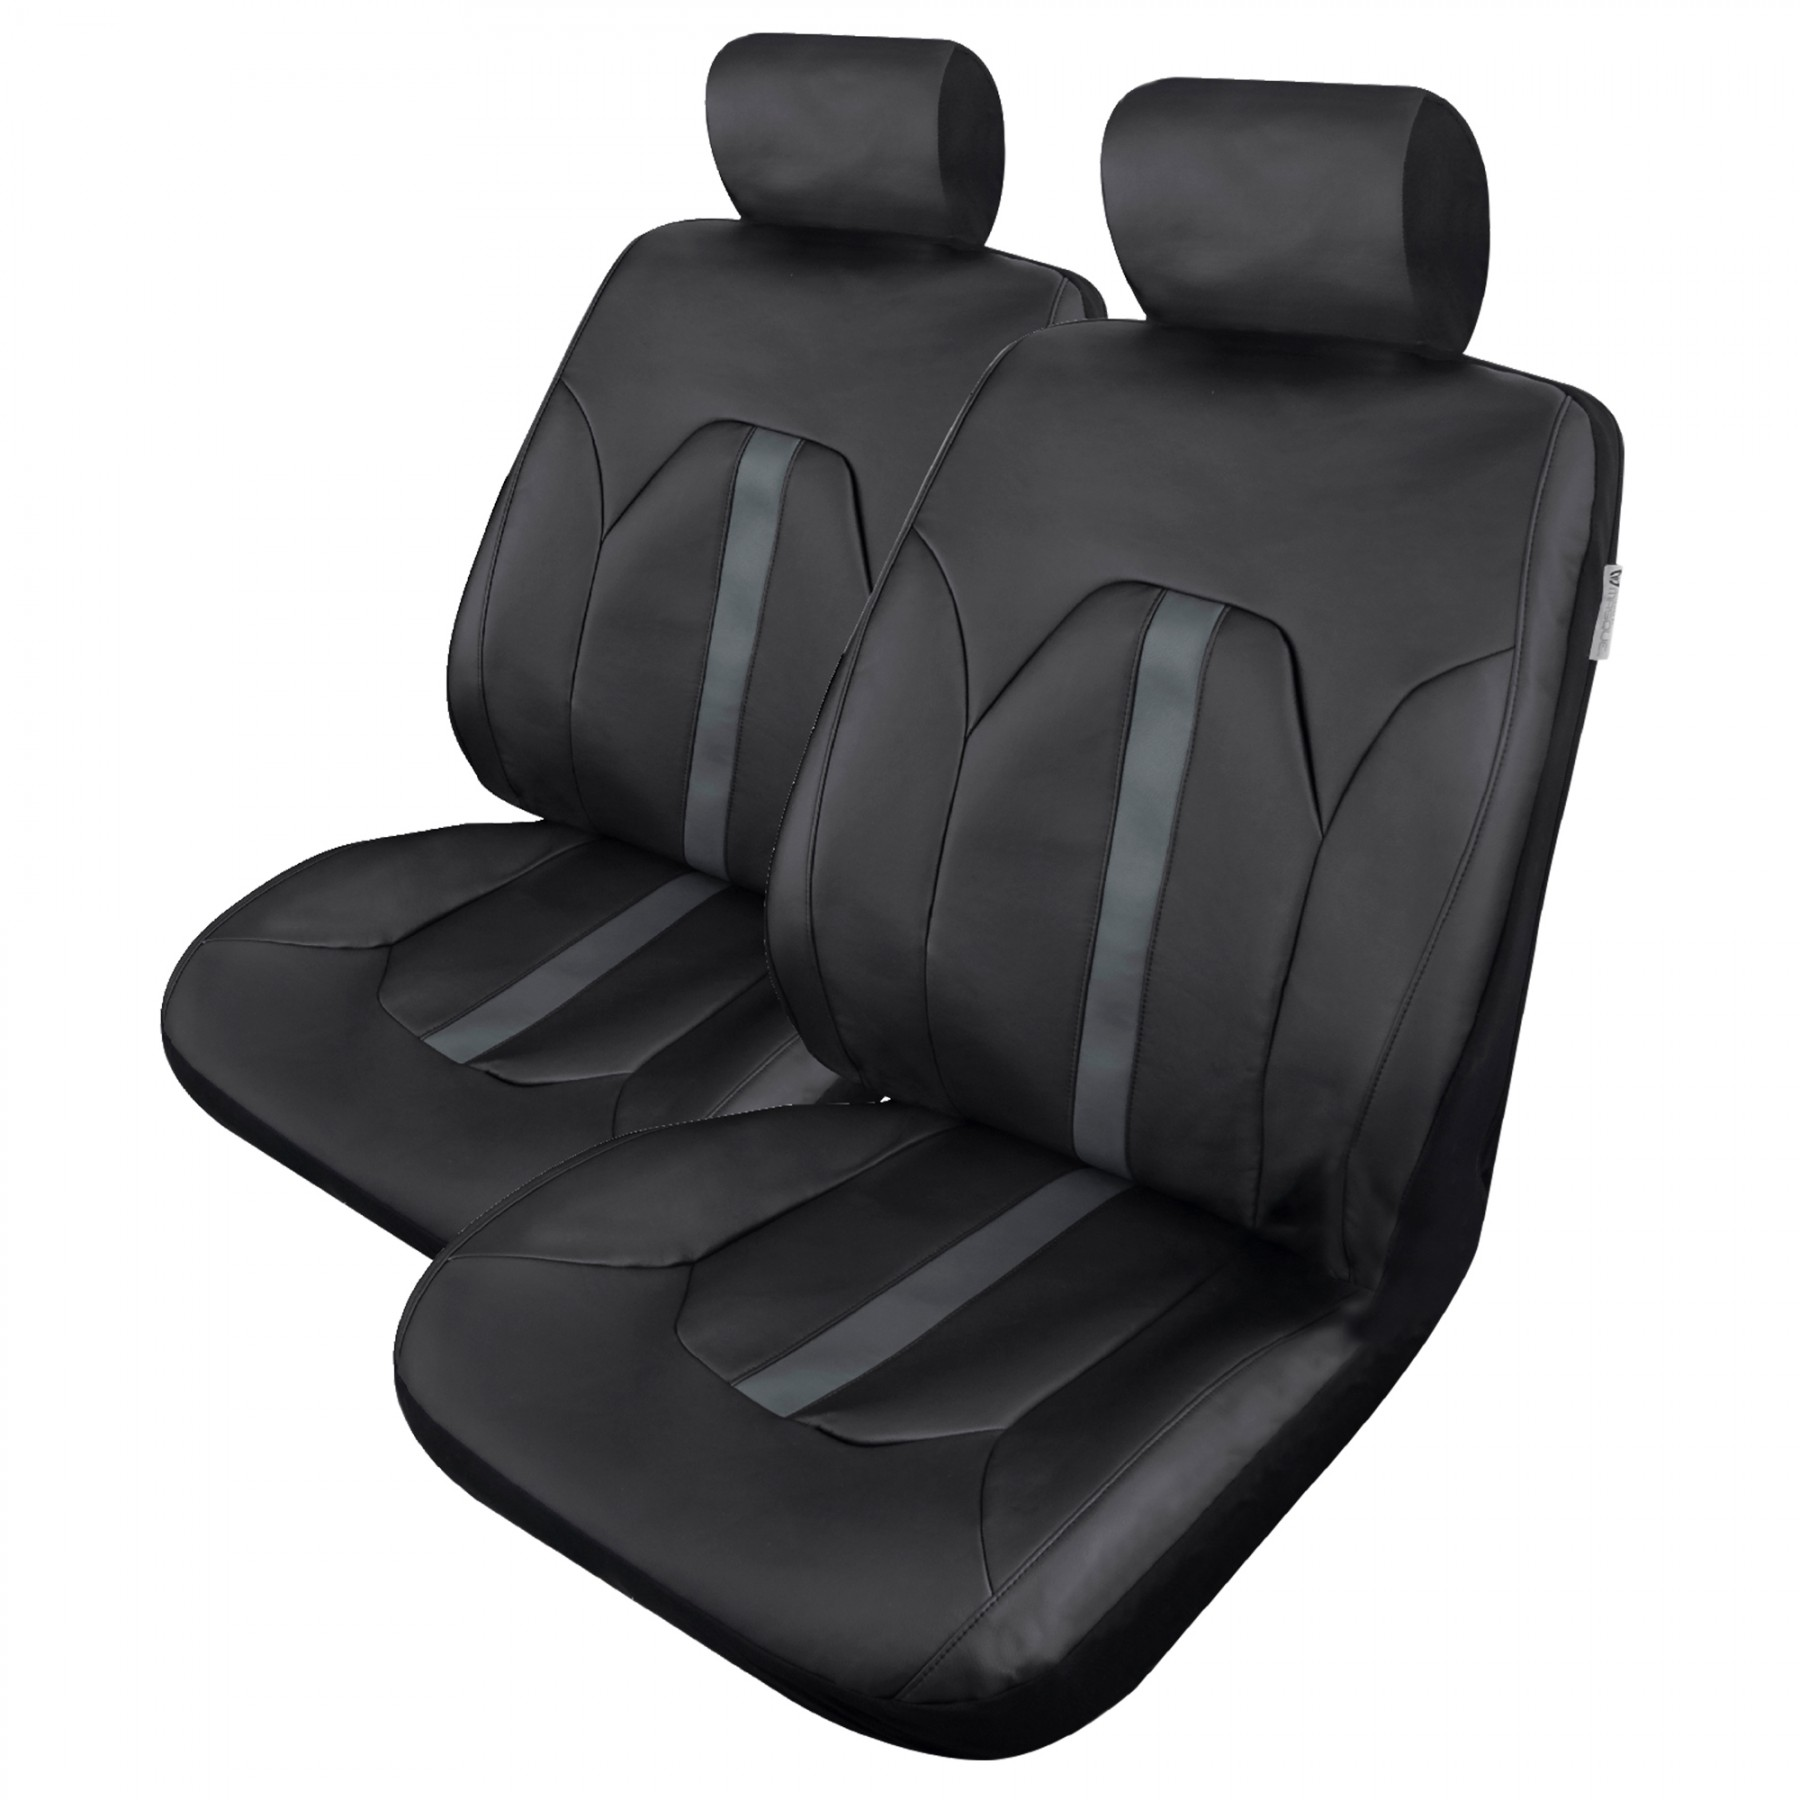 Montana Leather Truck Front Seat Cover